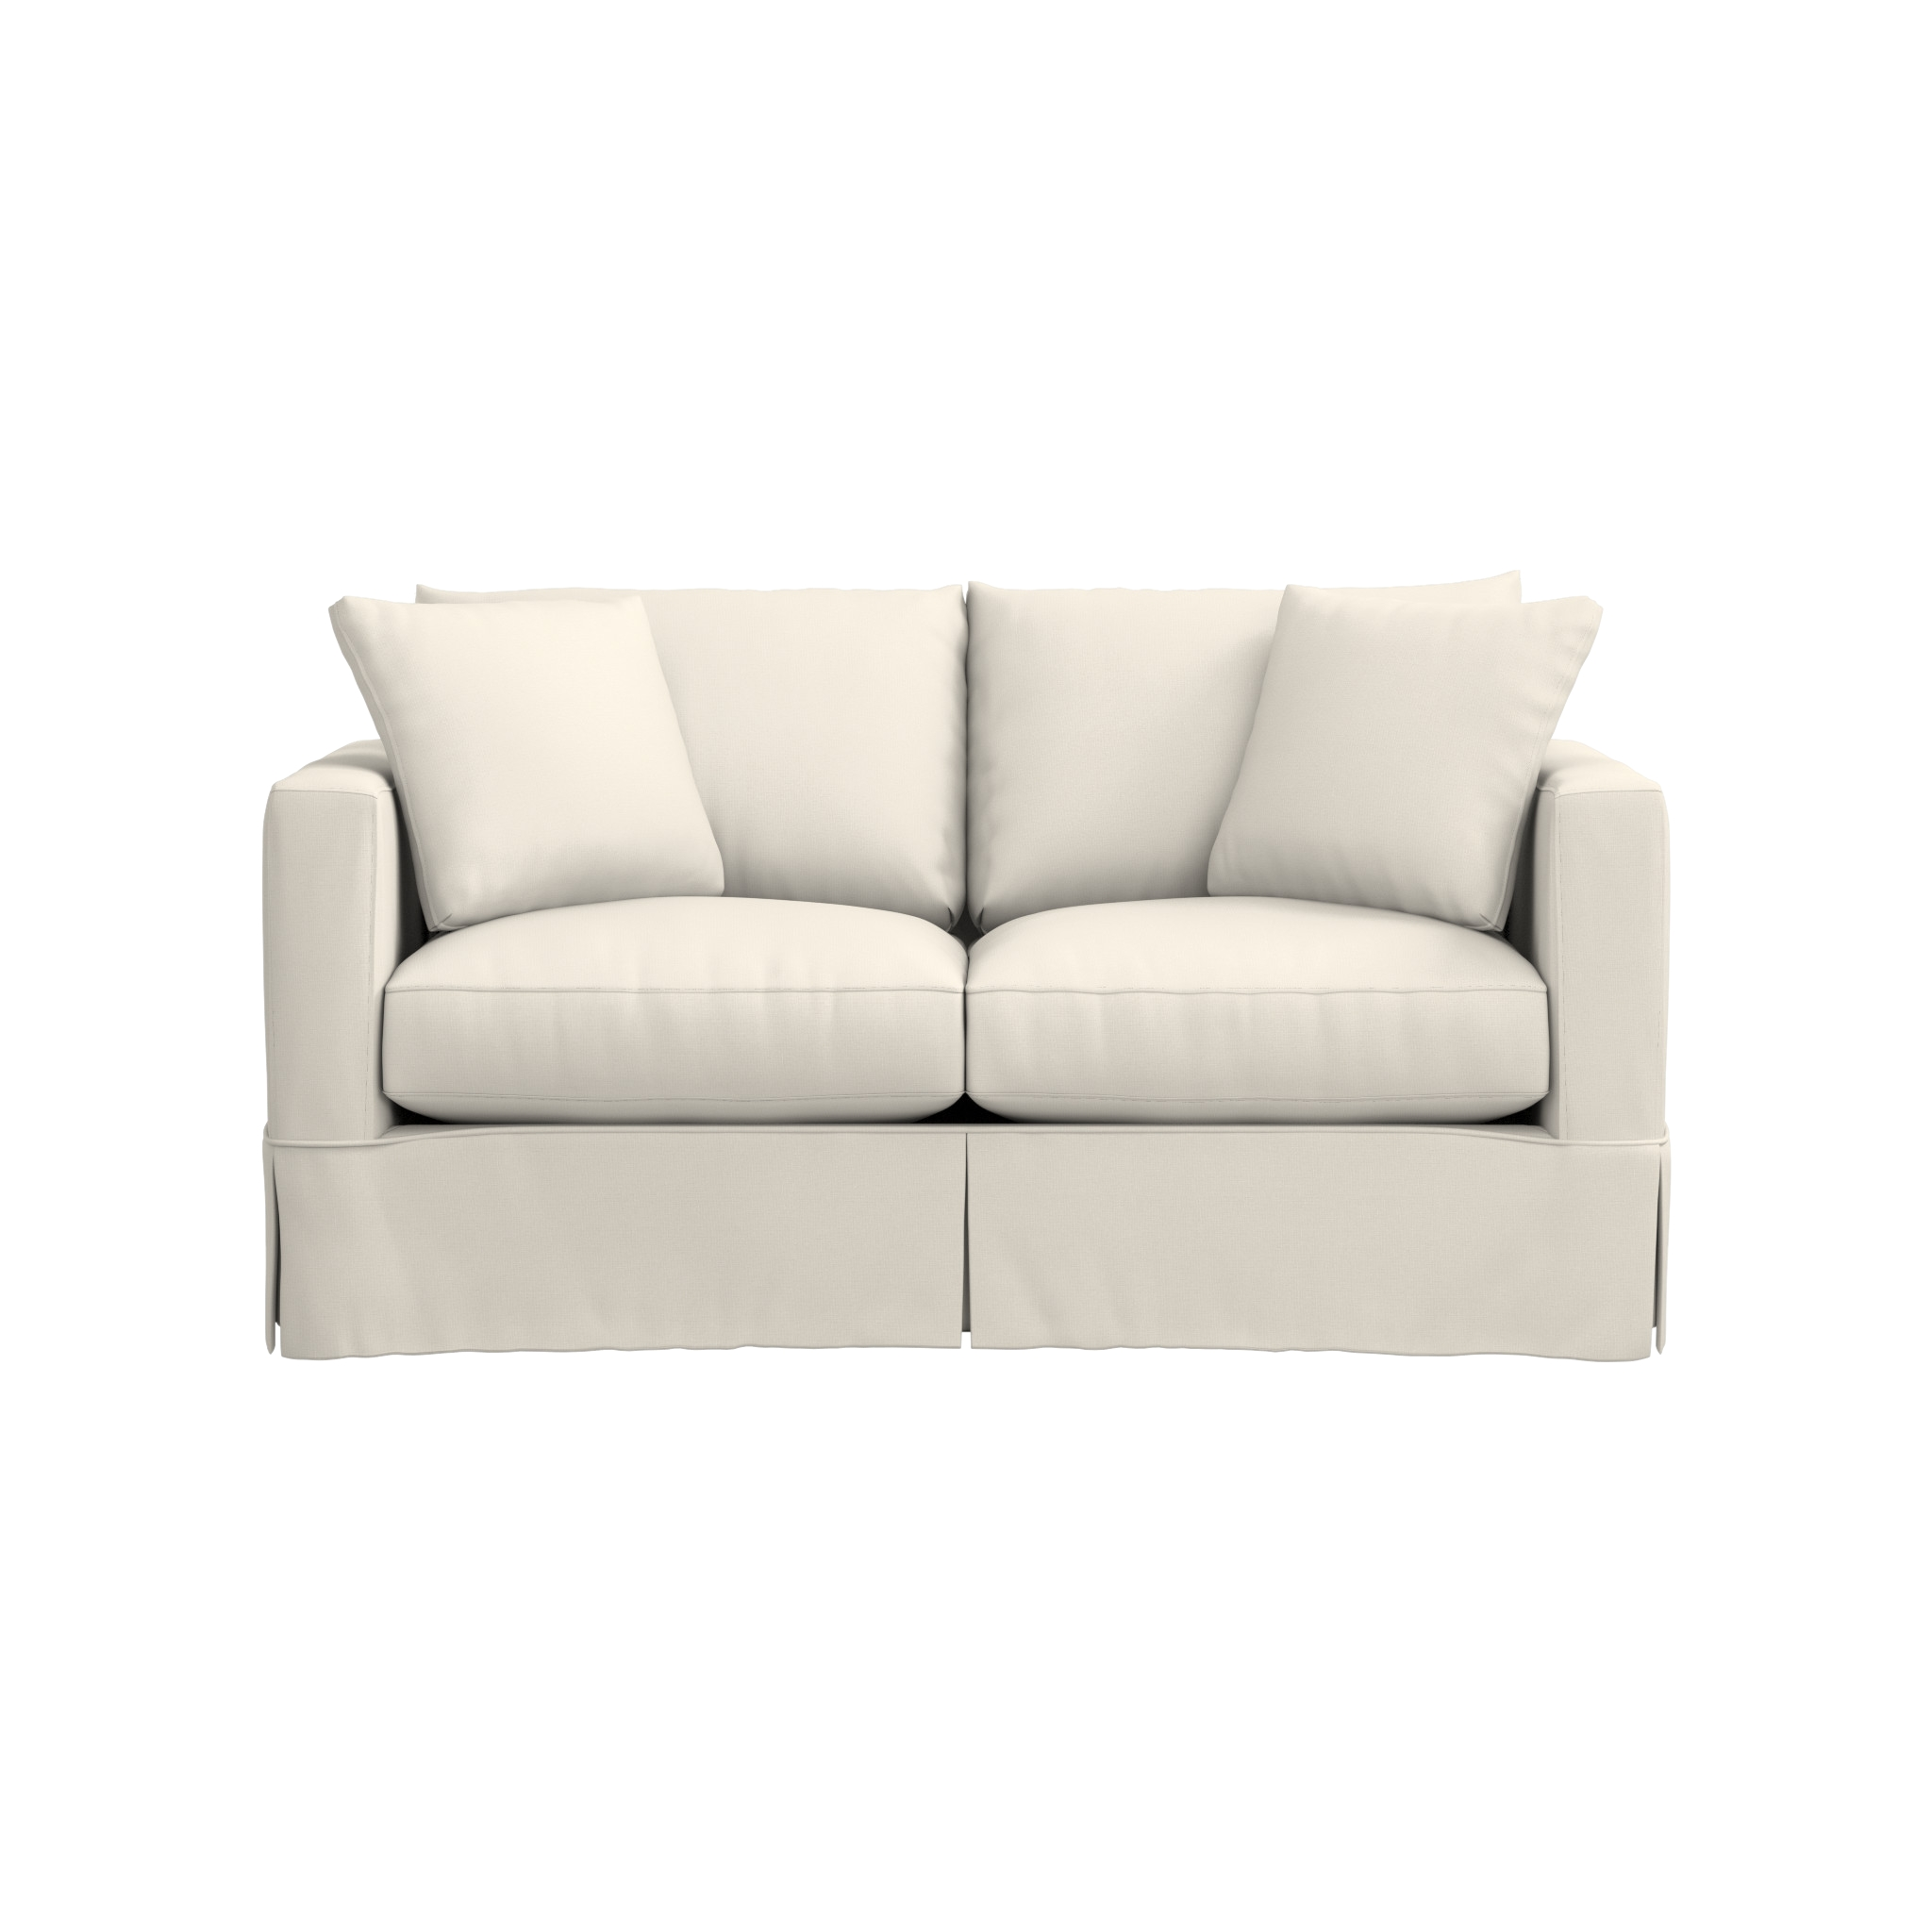 20 Collection Of Crate And Barrel Sleeper Sofas Sofa Ideas